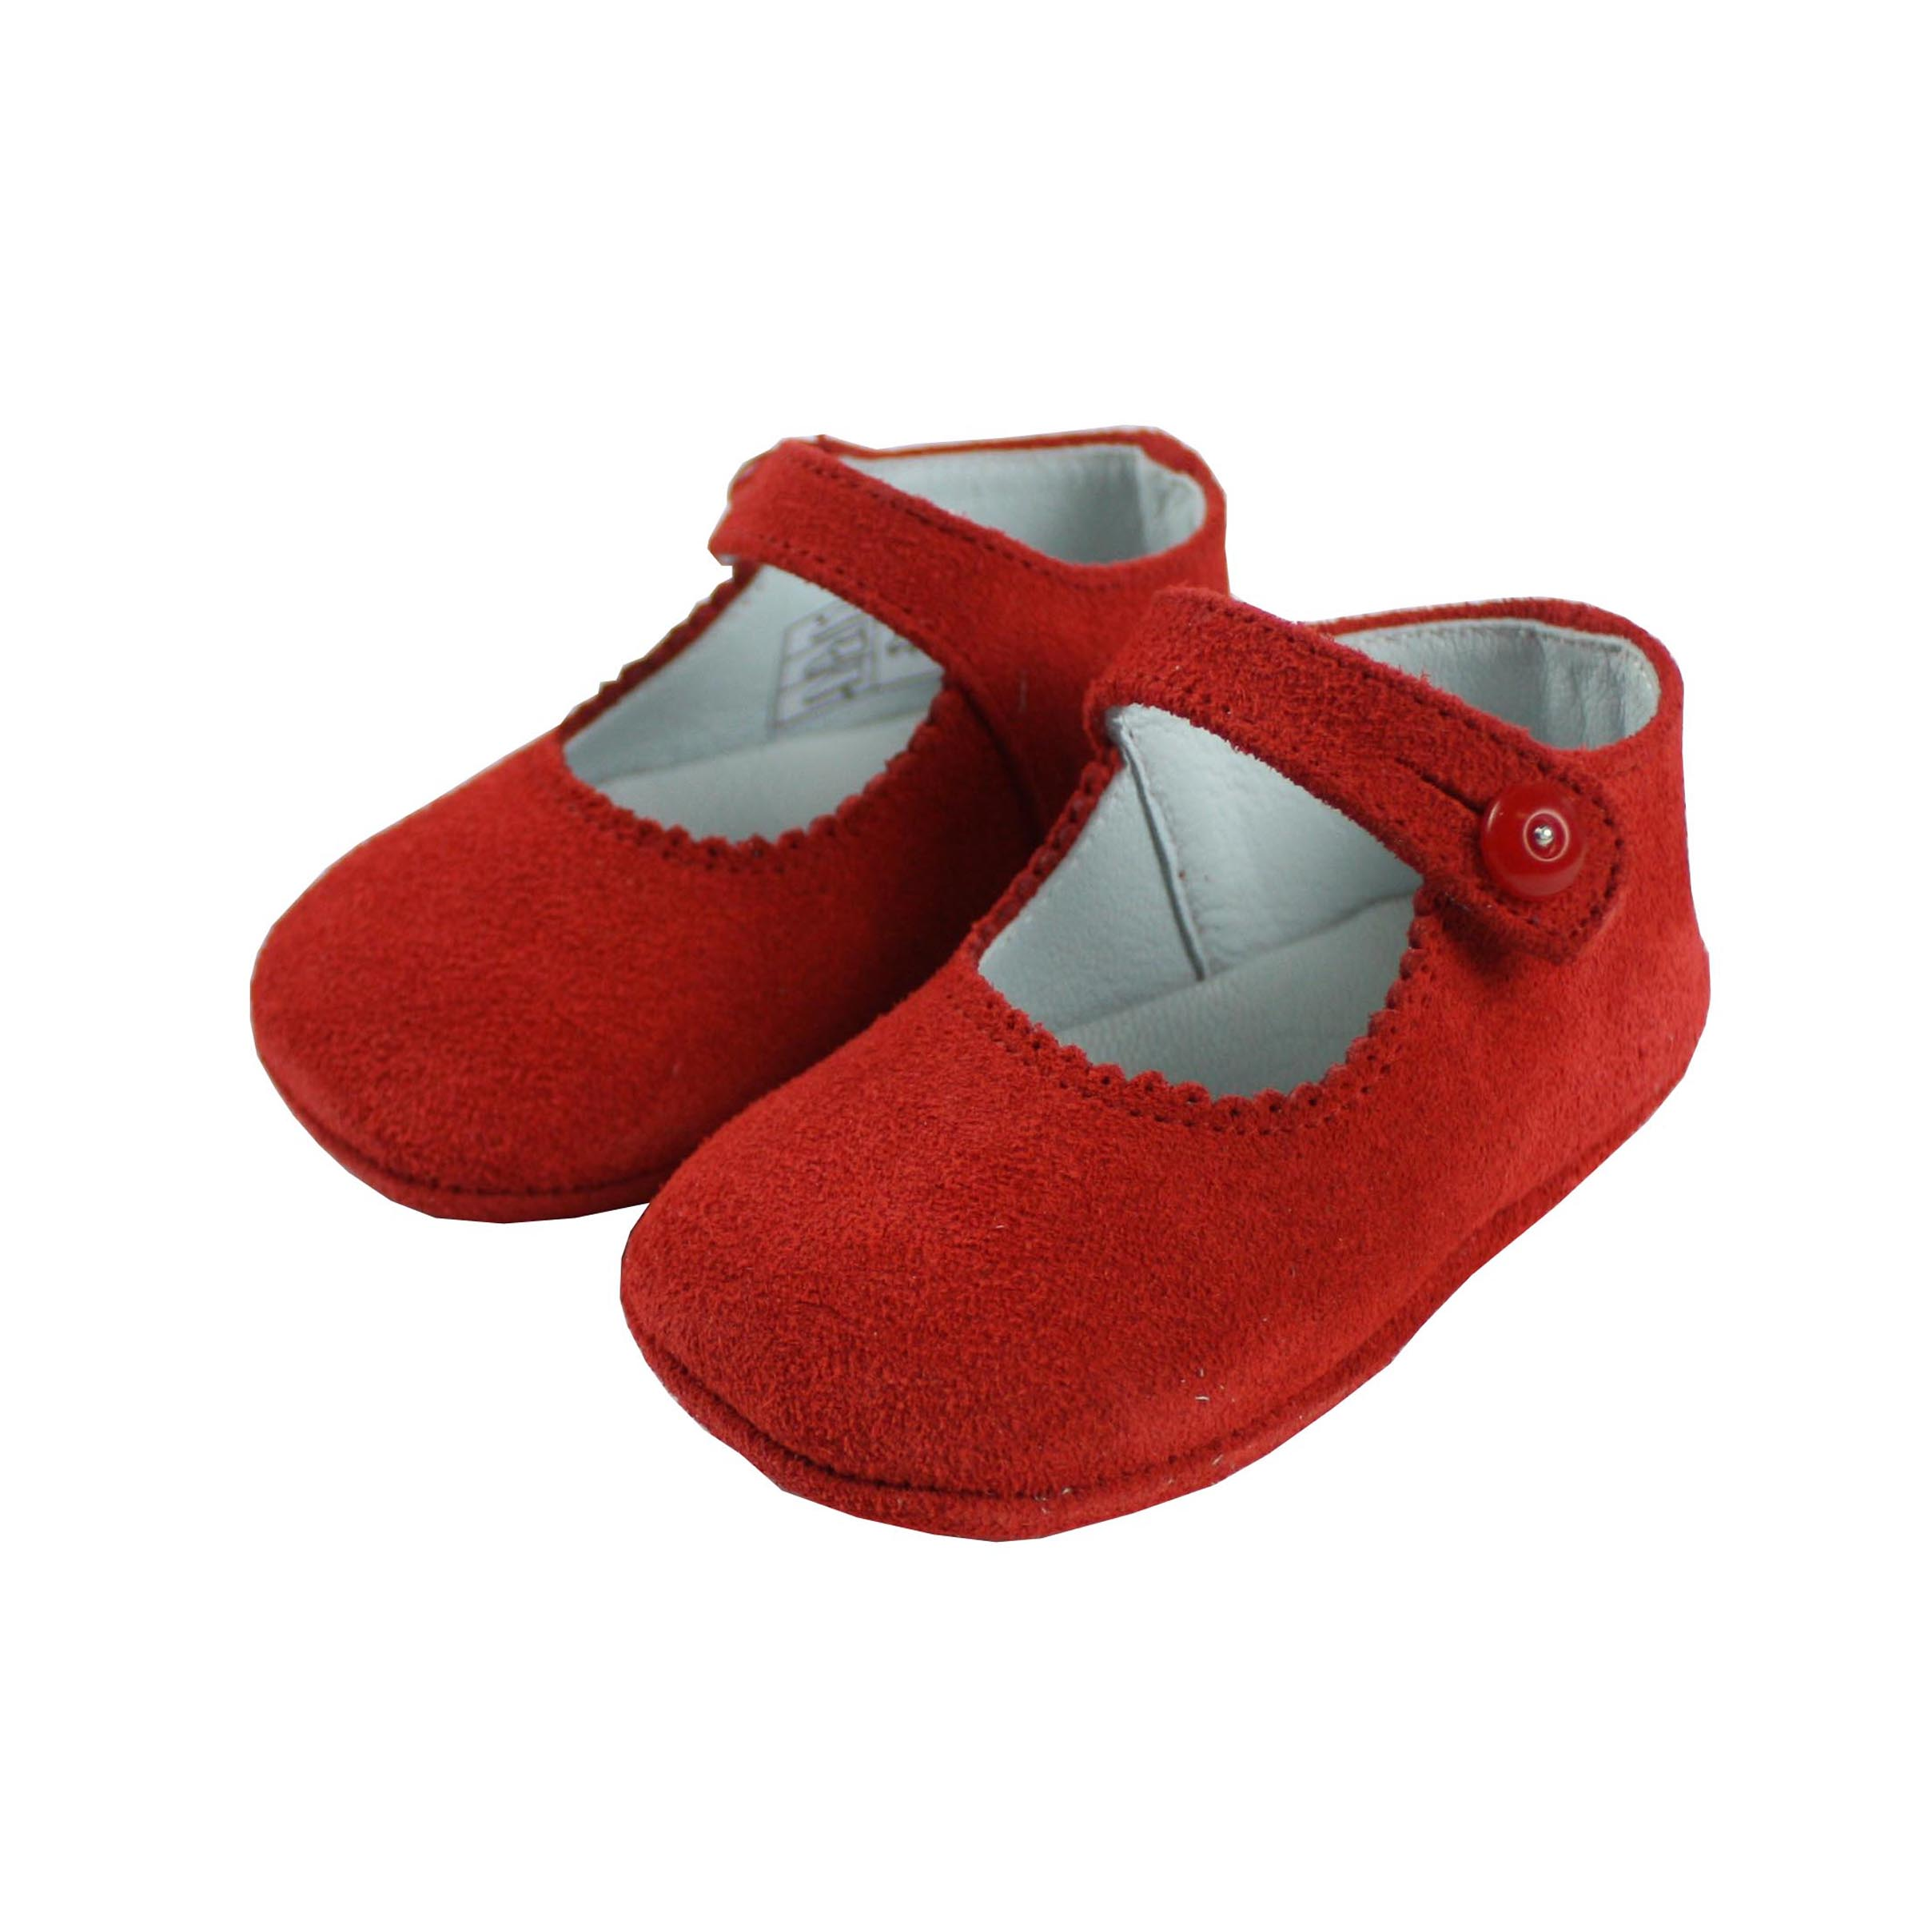 75388f55dfdb6 Baby red suede shoes girls